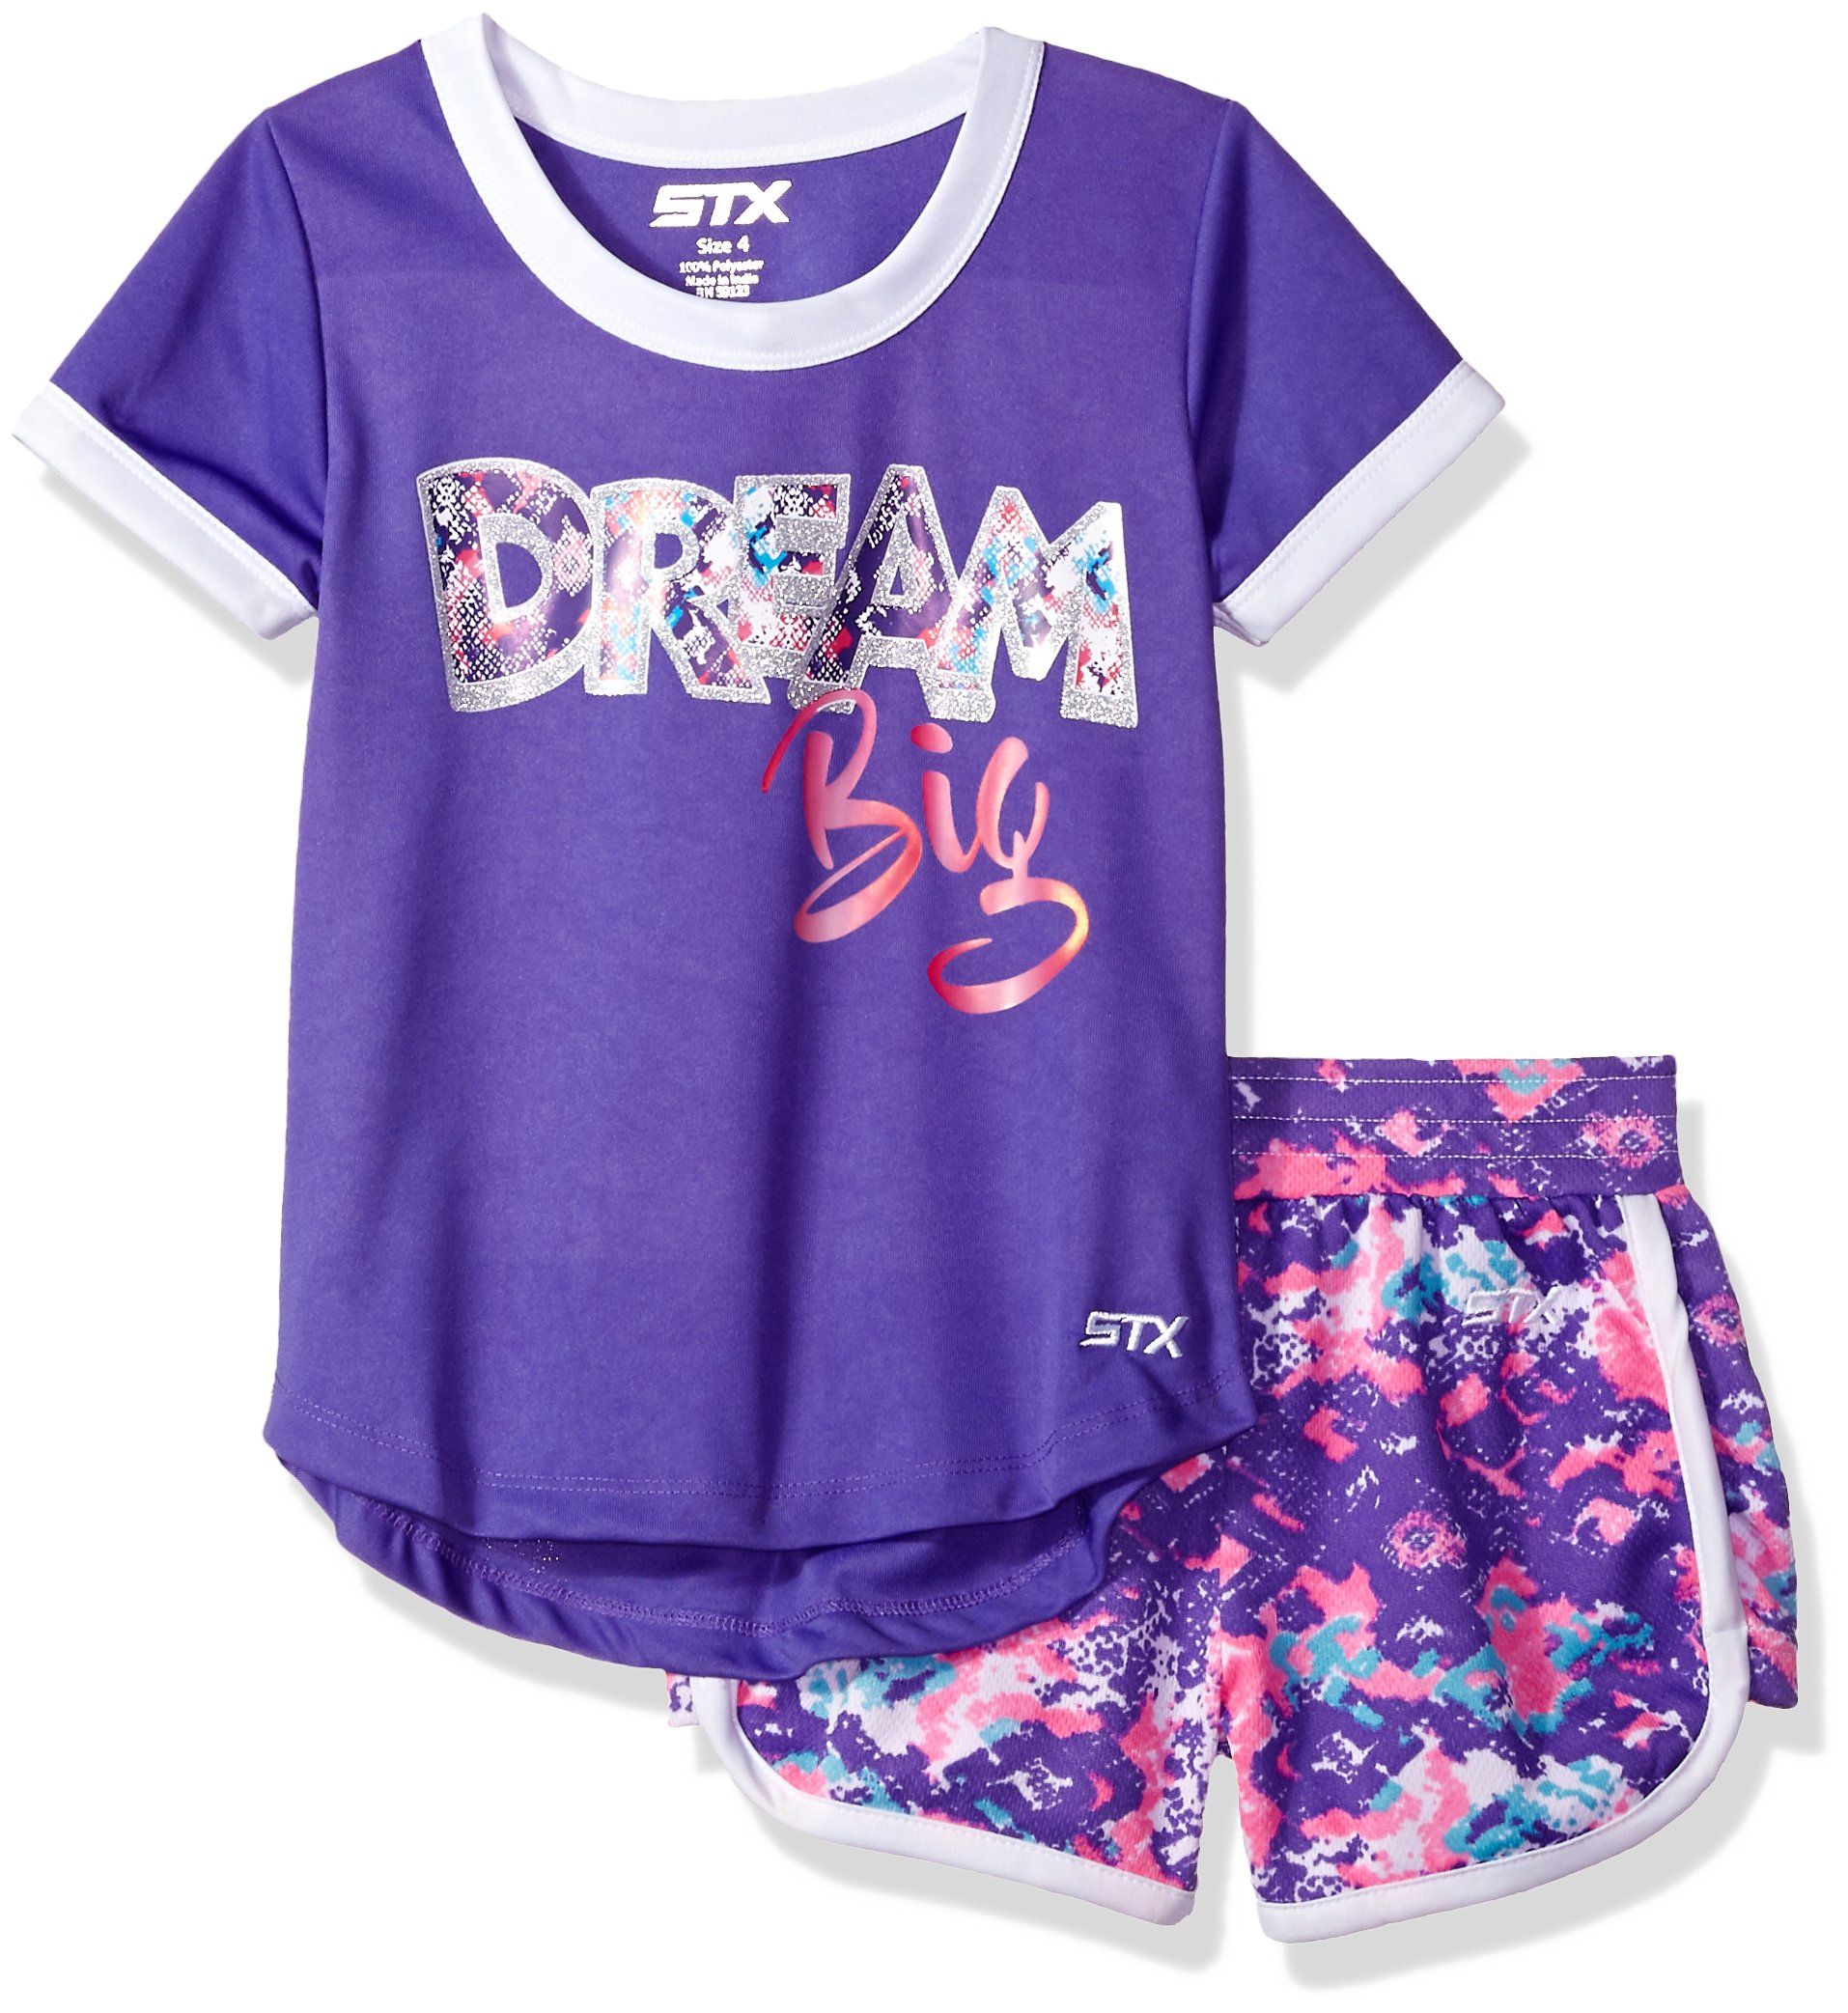 STX Toddler Girls' T-Shirt and Short Set (More Styles Available), Bright Purple, 2T